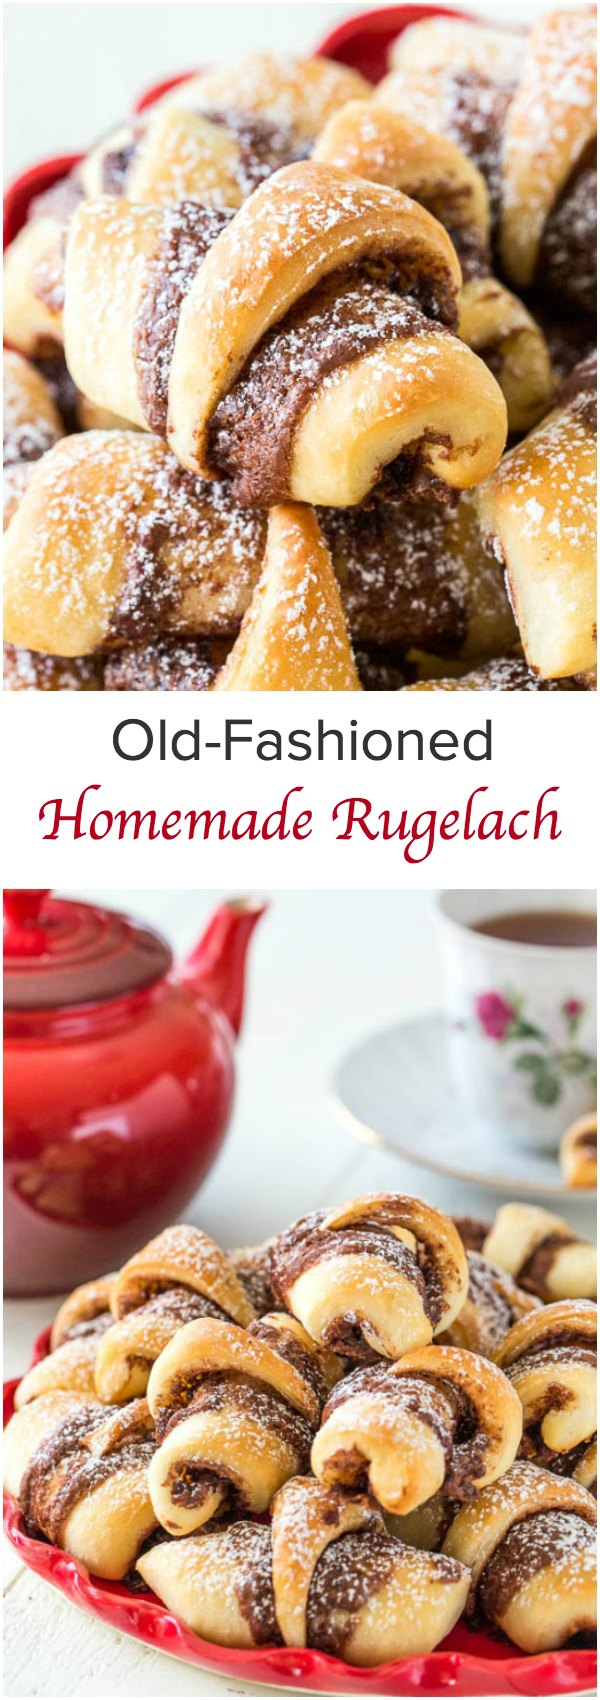 Soft and fluffy mom's old-fashioned rugelach are always a hit! These yeast leavened rugelach are light and tasty, and you can fill them with anything your heart desires.